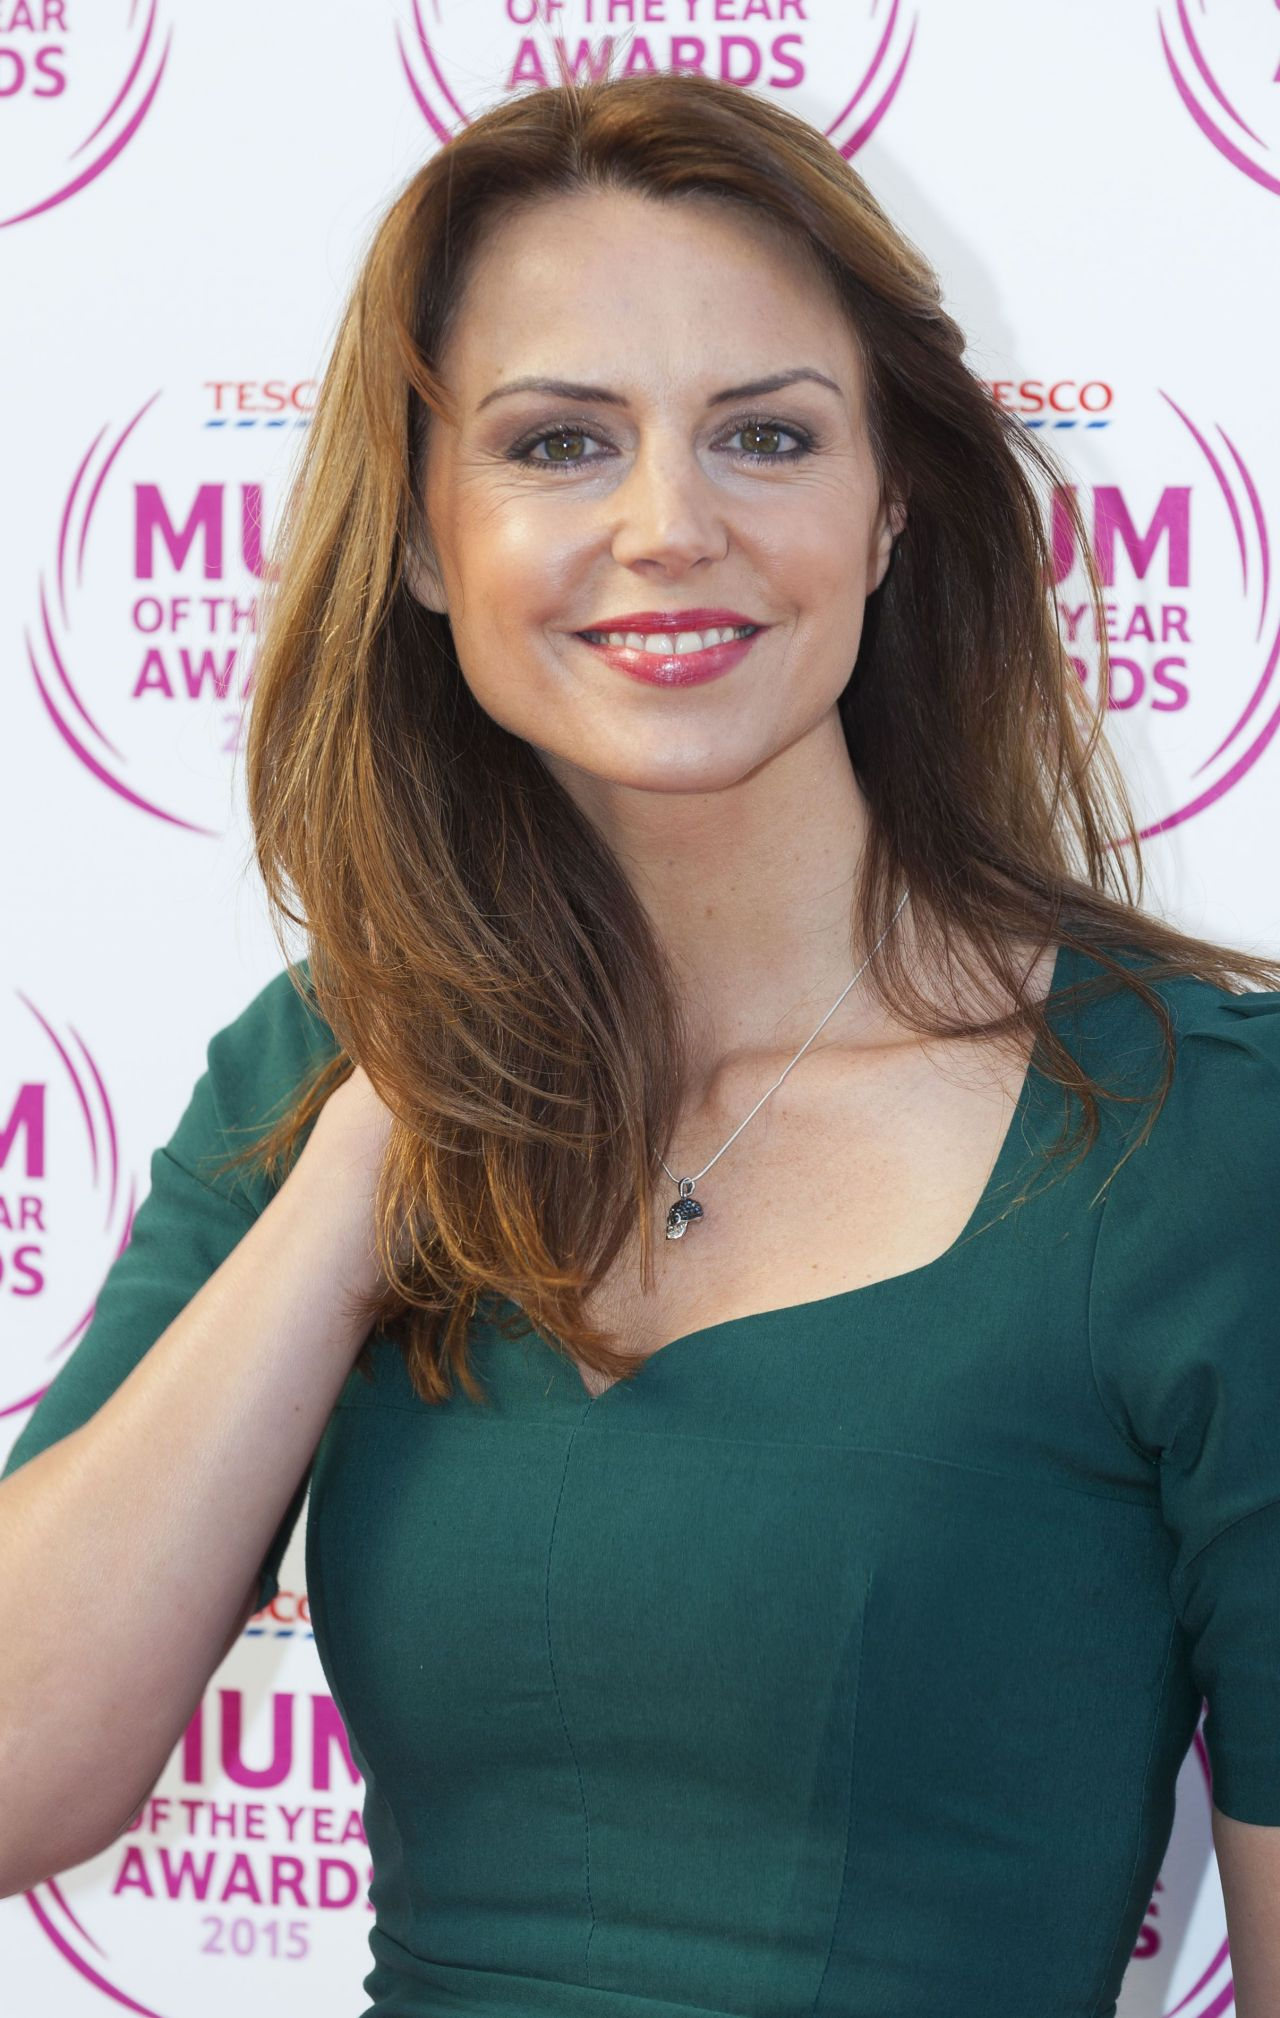 Beverley Turner Latest Photos Celebmafia